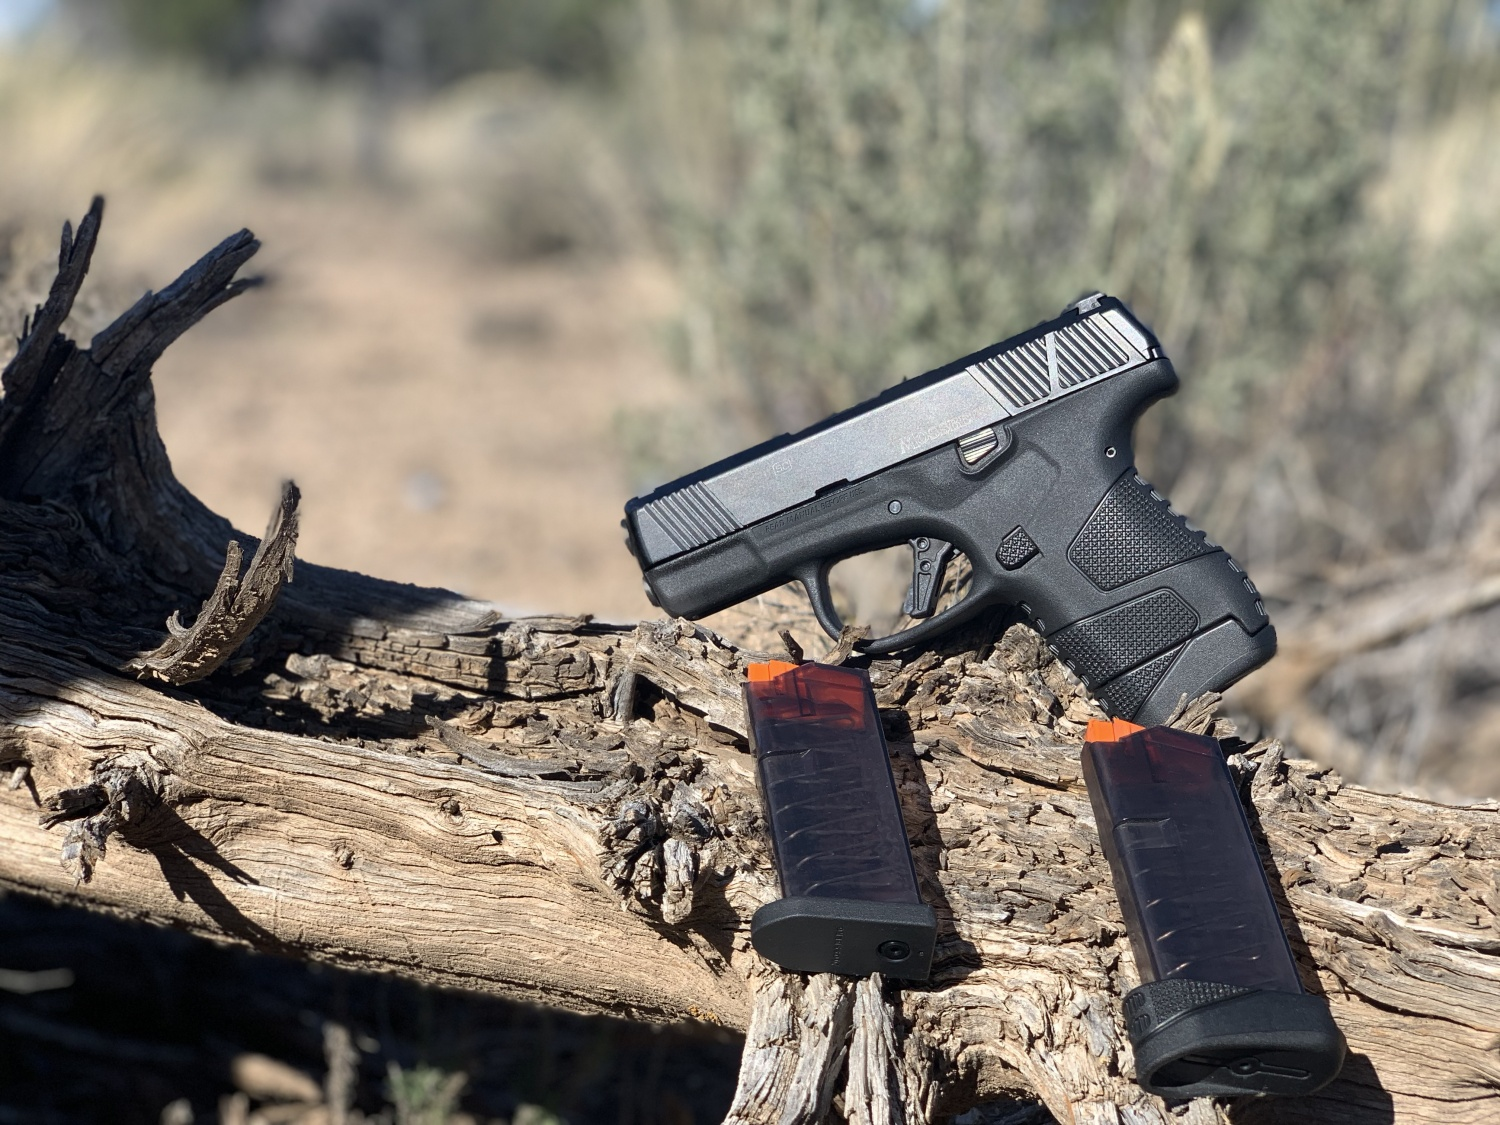 TFB Review: Mossberg MC1 Subcompact Pistol -The Firearm Blog